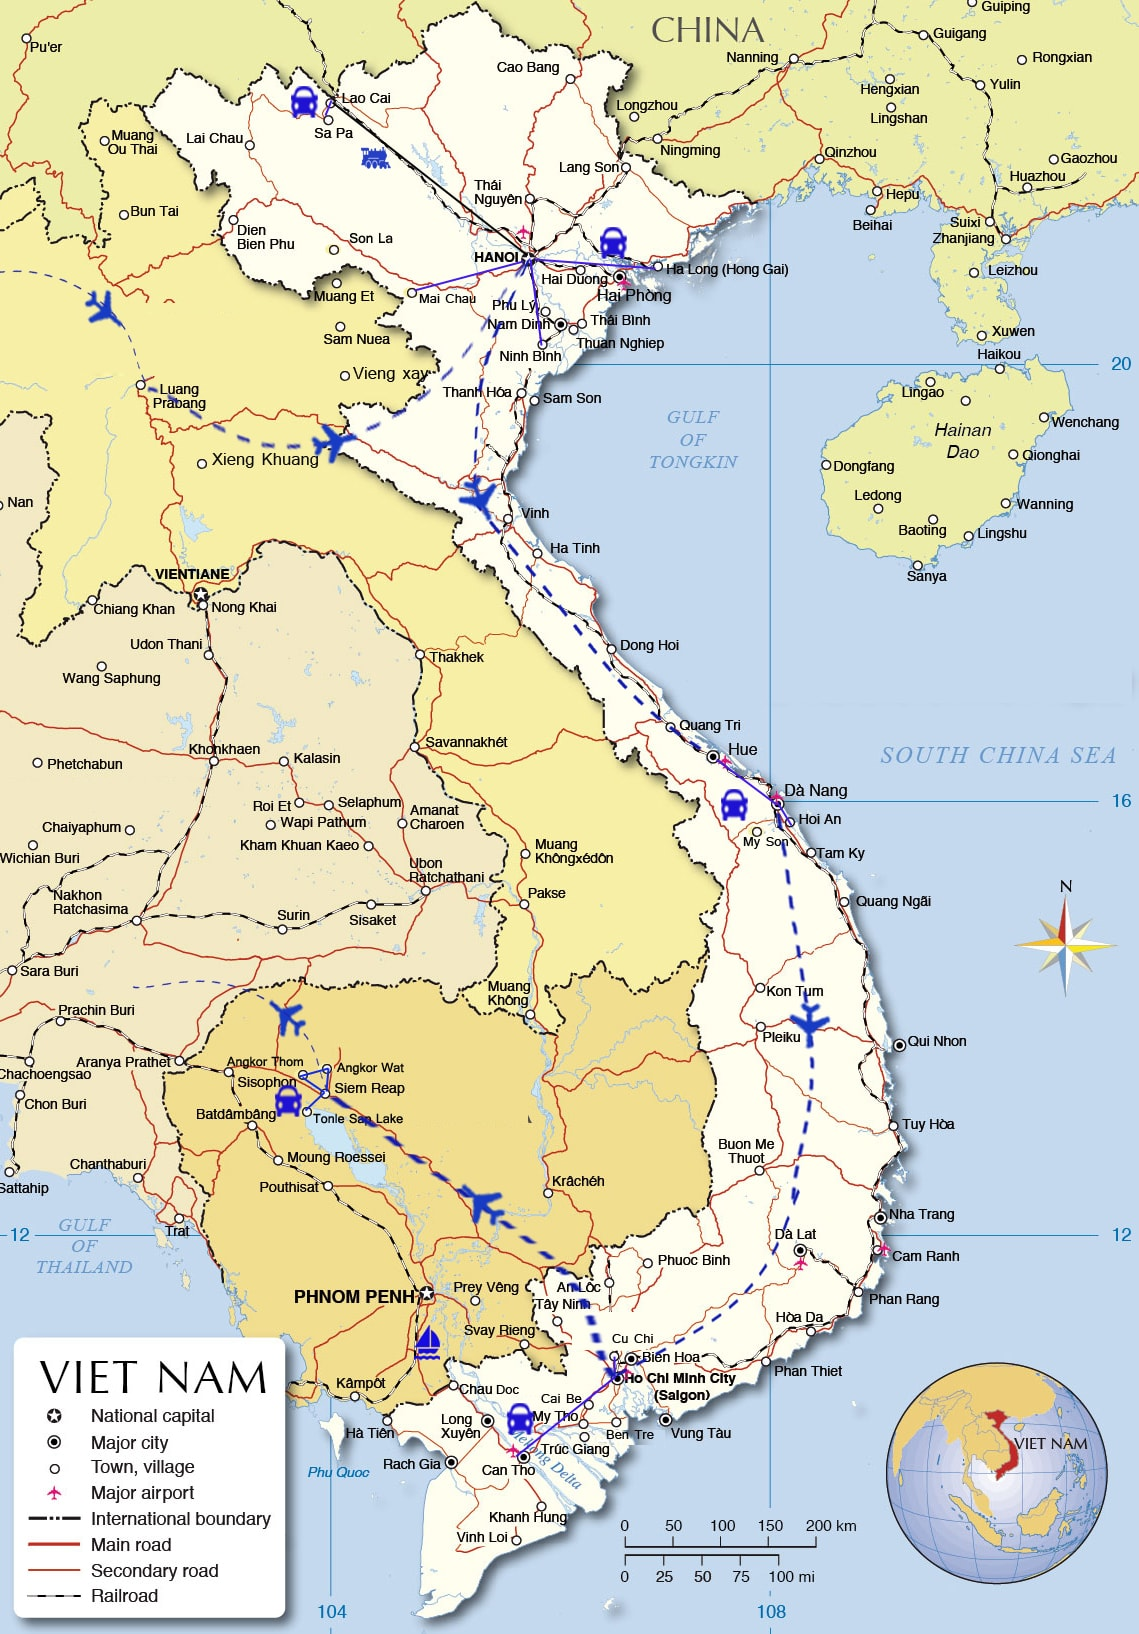 IDT02: Indochina Holiday with all the highlights  - 21 days from HN map